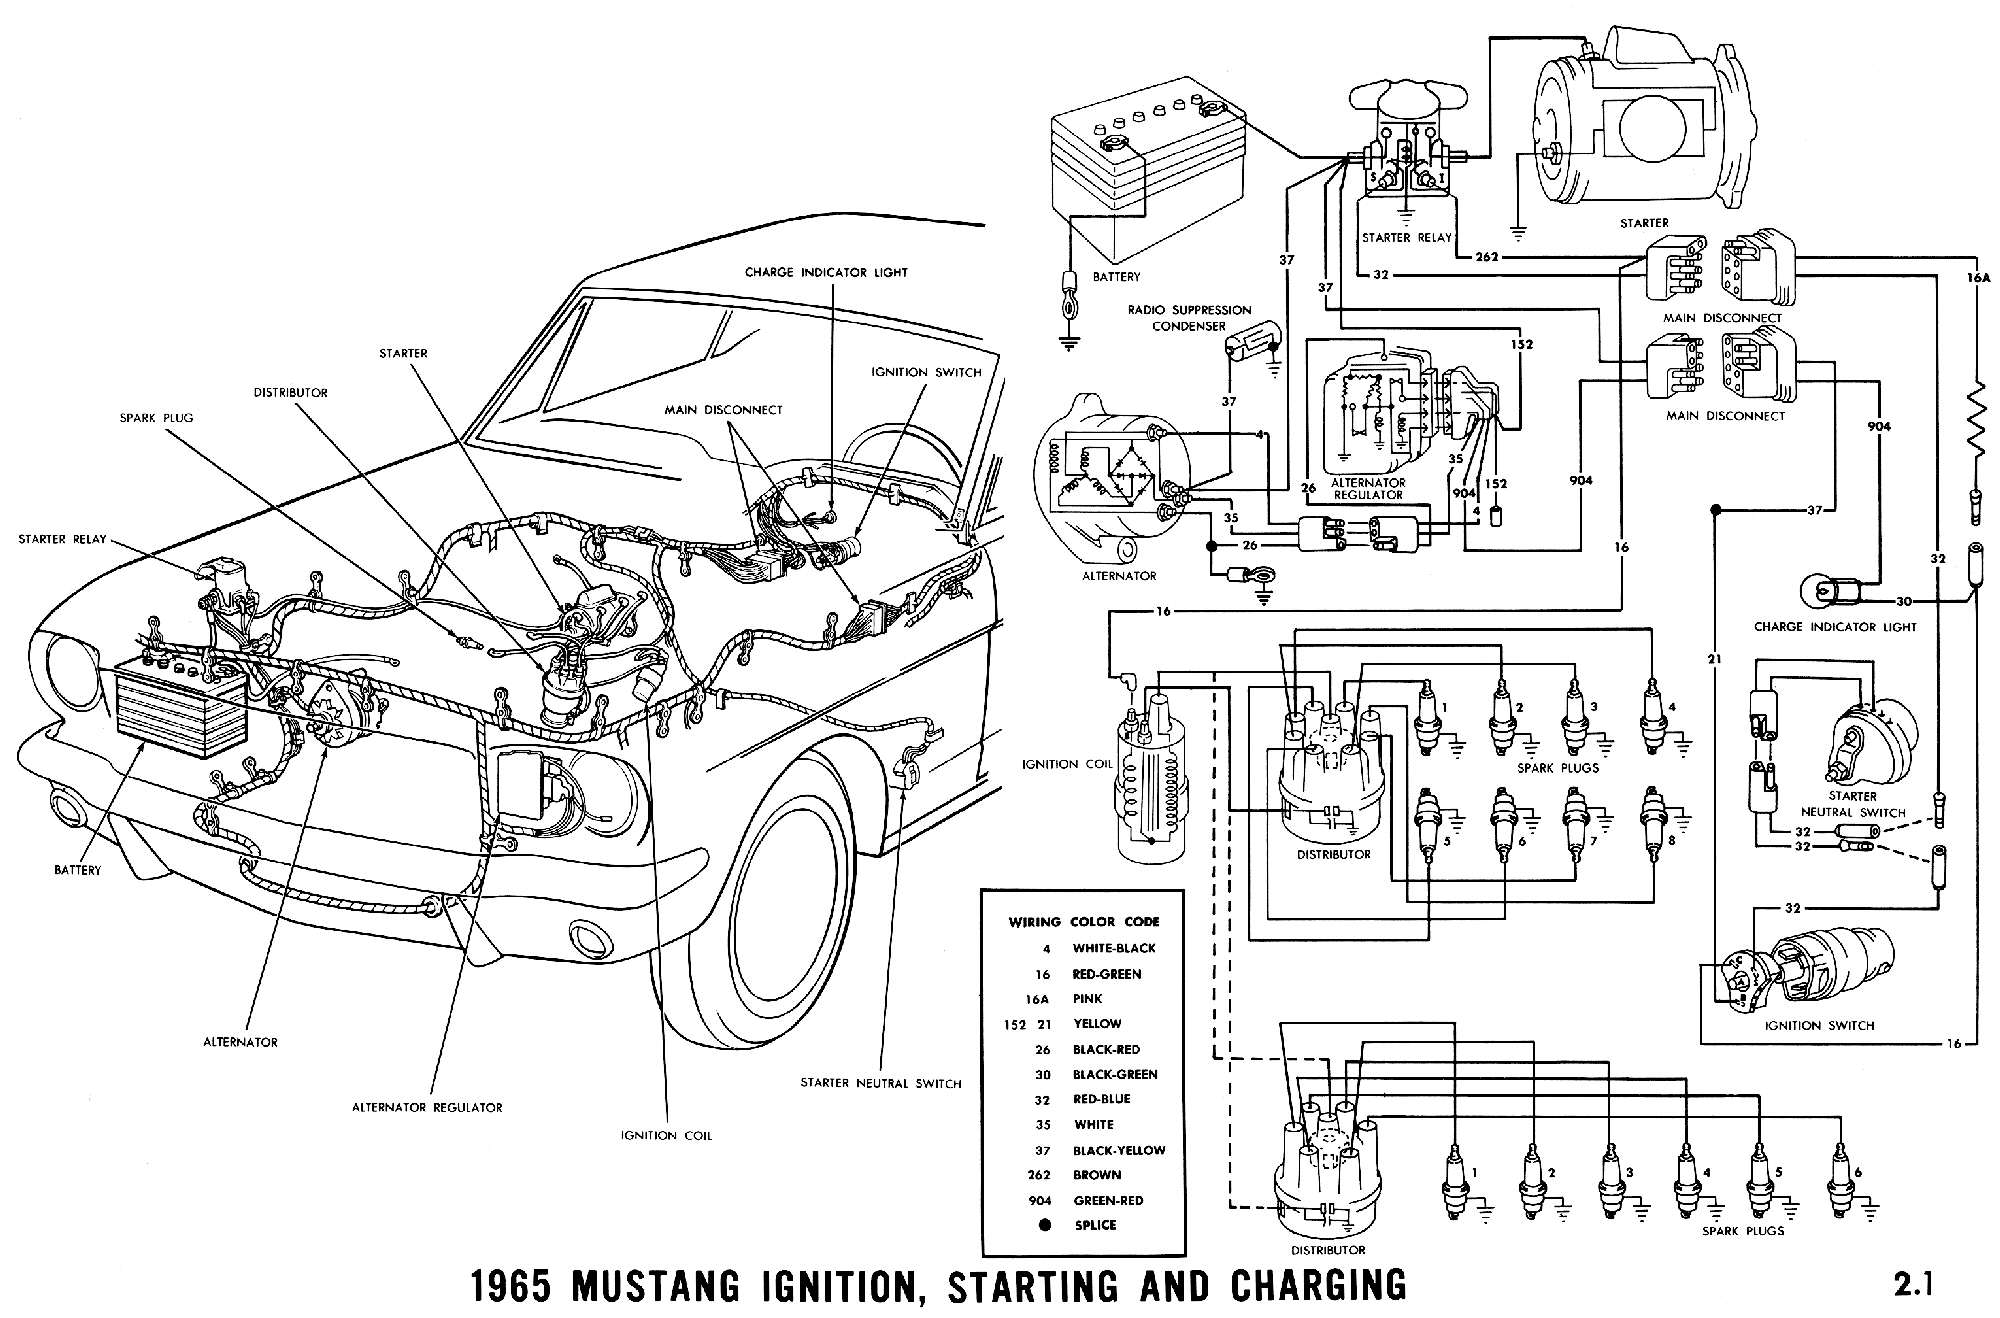 1965c 1965 mustang wiring diagrams average joe restoration 1965 ford mustang wiring diagrams at mifinder.co